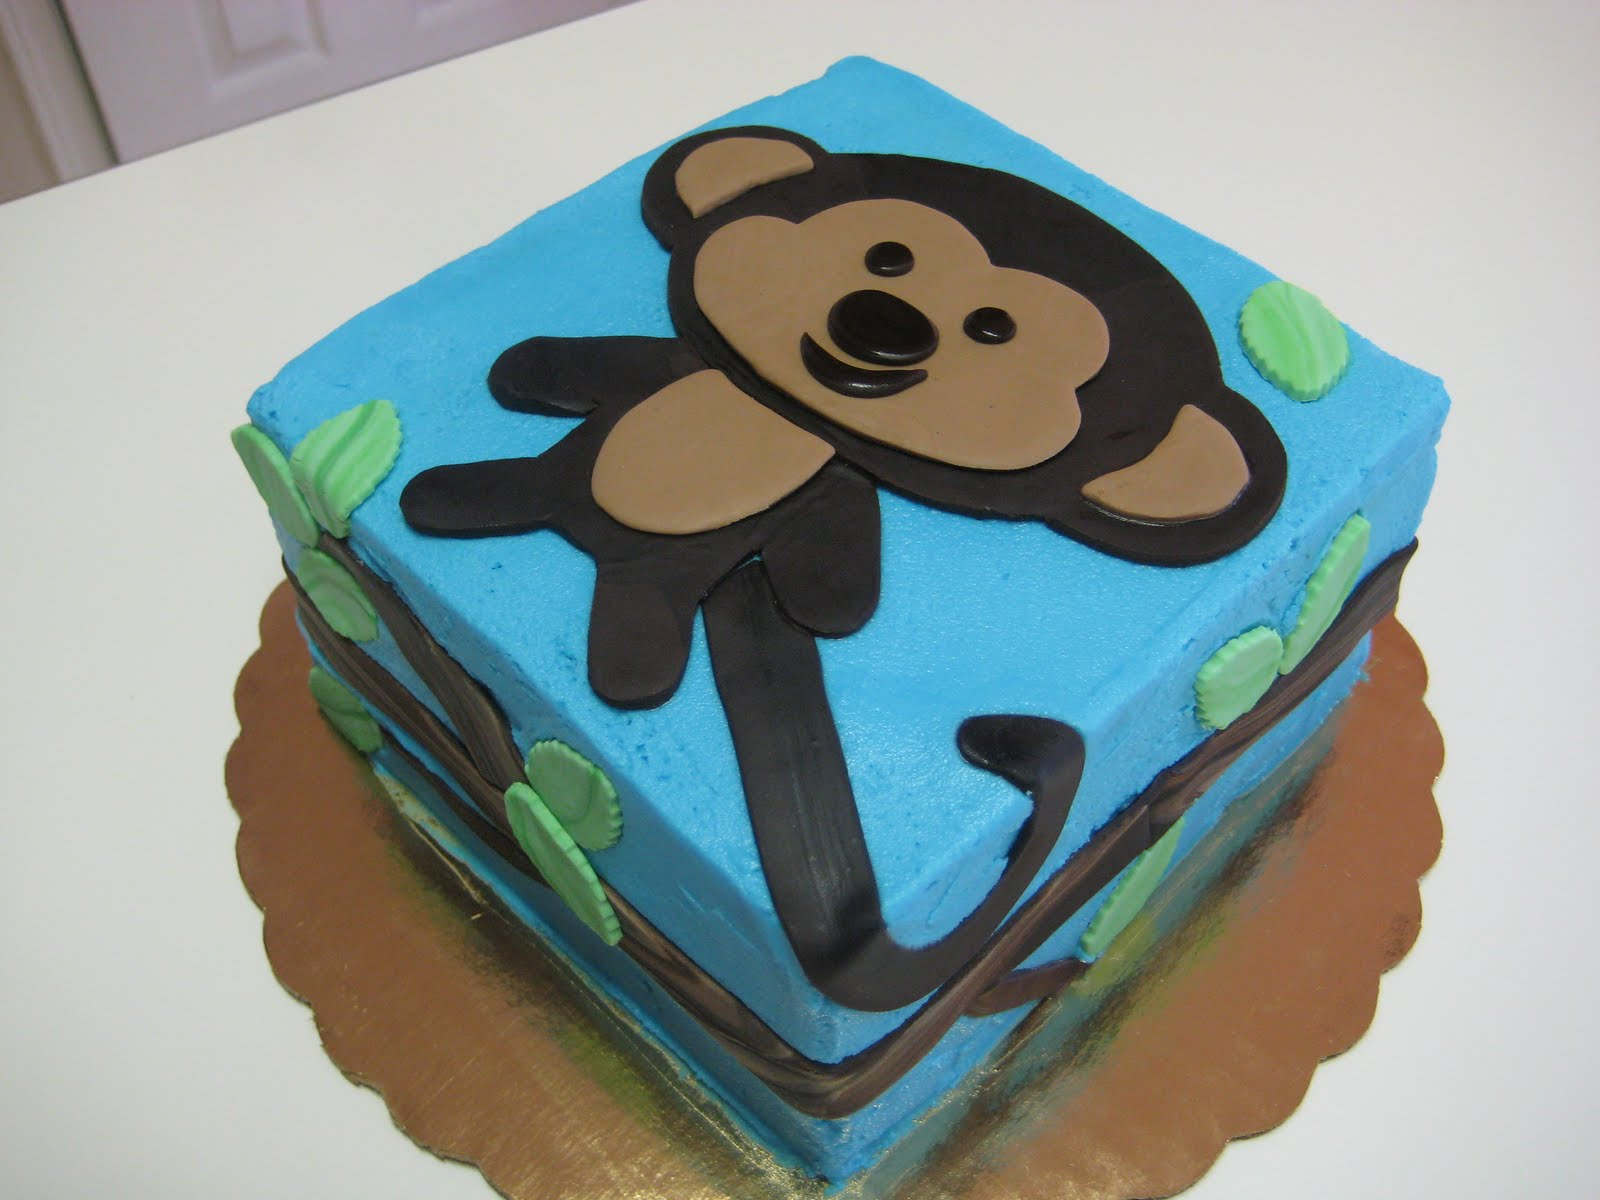 Imaginative dispostion creative pleasures january 2011 - Monkey baby shower cakes for boys ...